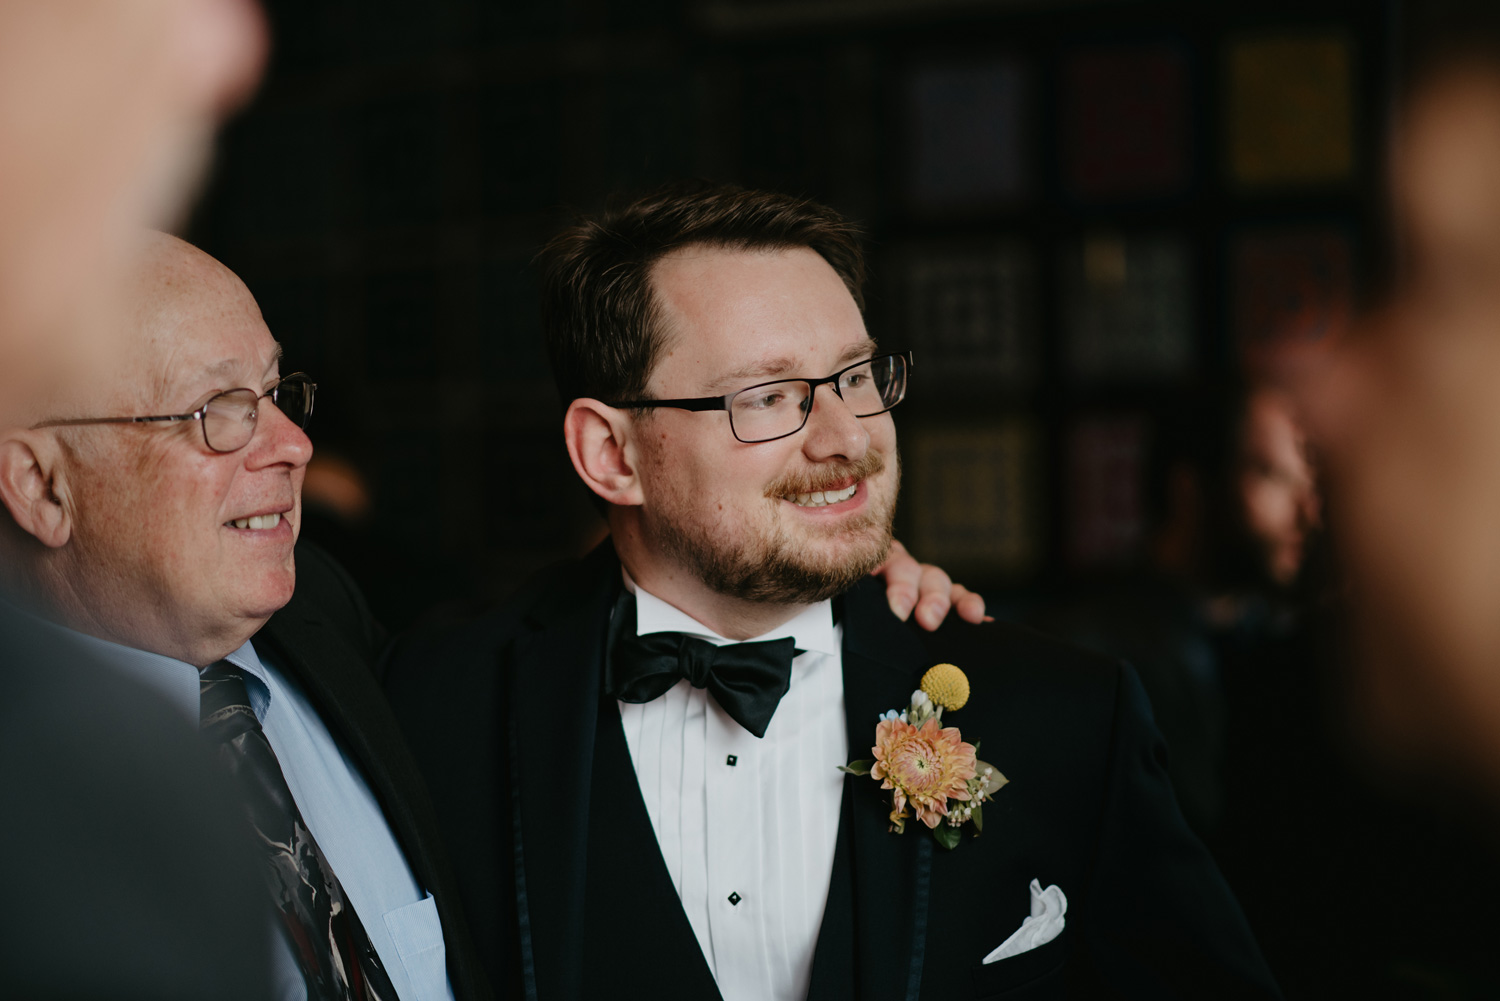 Groom socializing with guests during cocktail hour